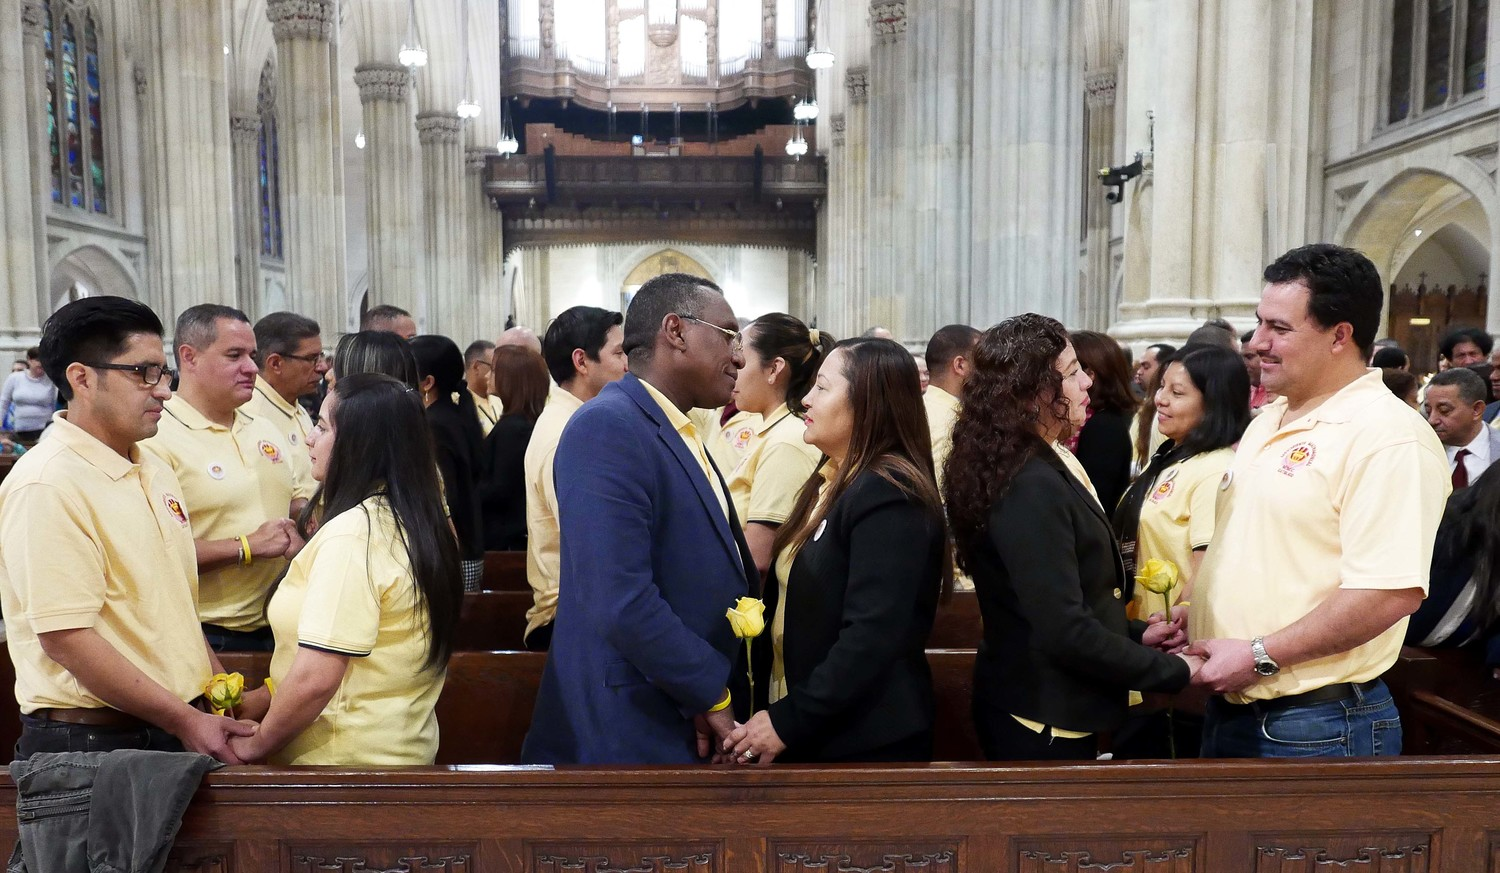 More than 400 Hispanic couples renewed their marriage vows at the Spanish-language World Marriage Day Mass at St. Patrick's Cathedral Feb. 11. The second annual Mass was sponsored by Movimiento Matrimonial Catolico (Catholic Marriage Movement) and the archdiocesan Office of Hispanic Ministry.